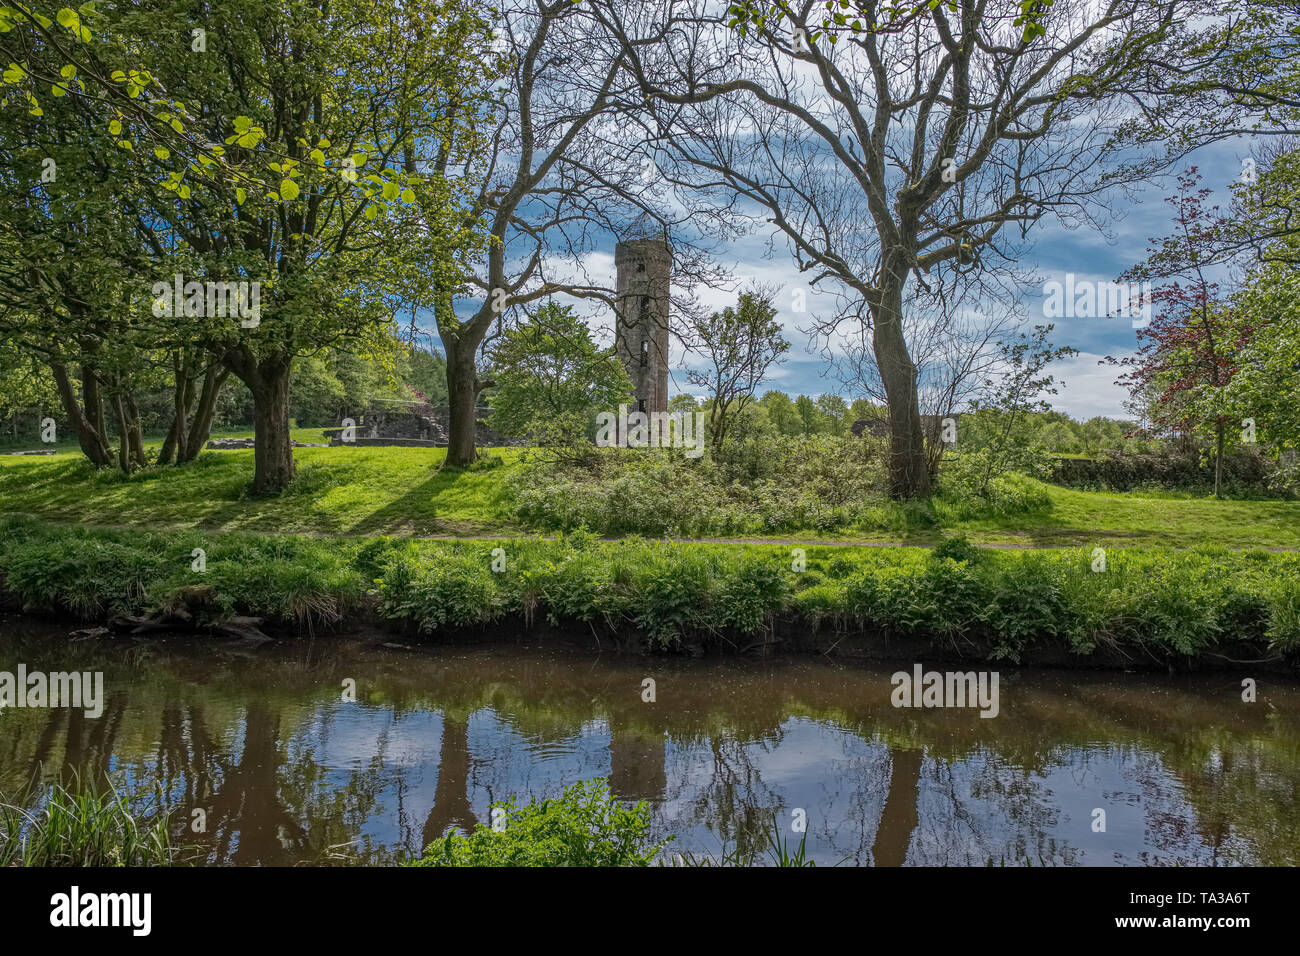 Scottish Country Park at the start of summer as the trees are a lush green colour and a gentle flowing burn or river with reflections and ancient ruin - Stock Image